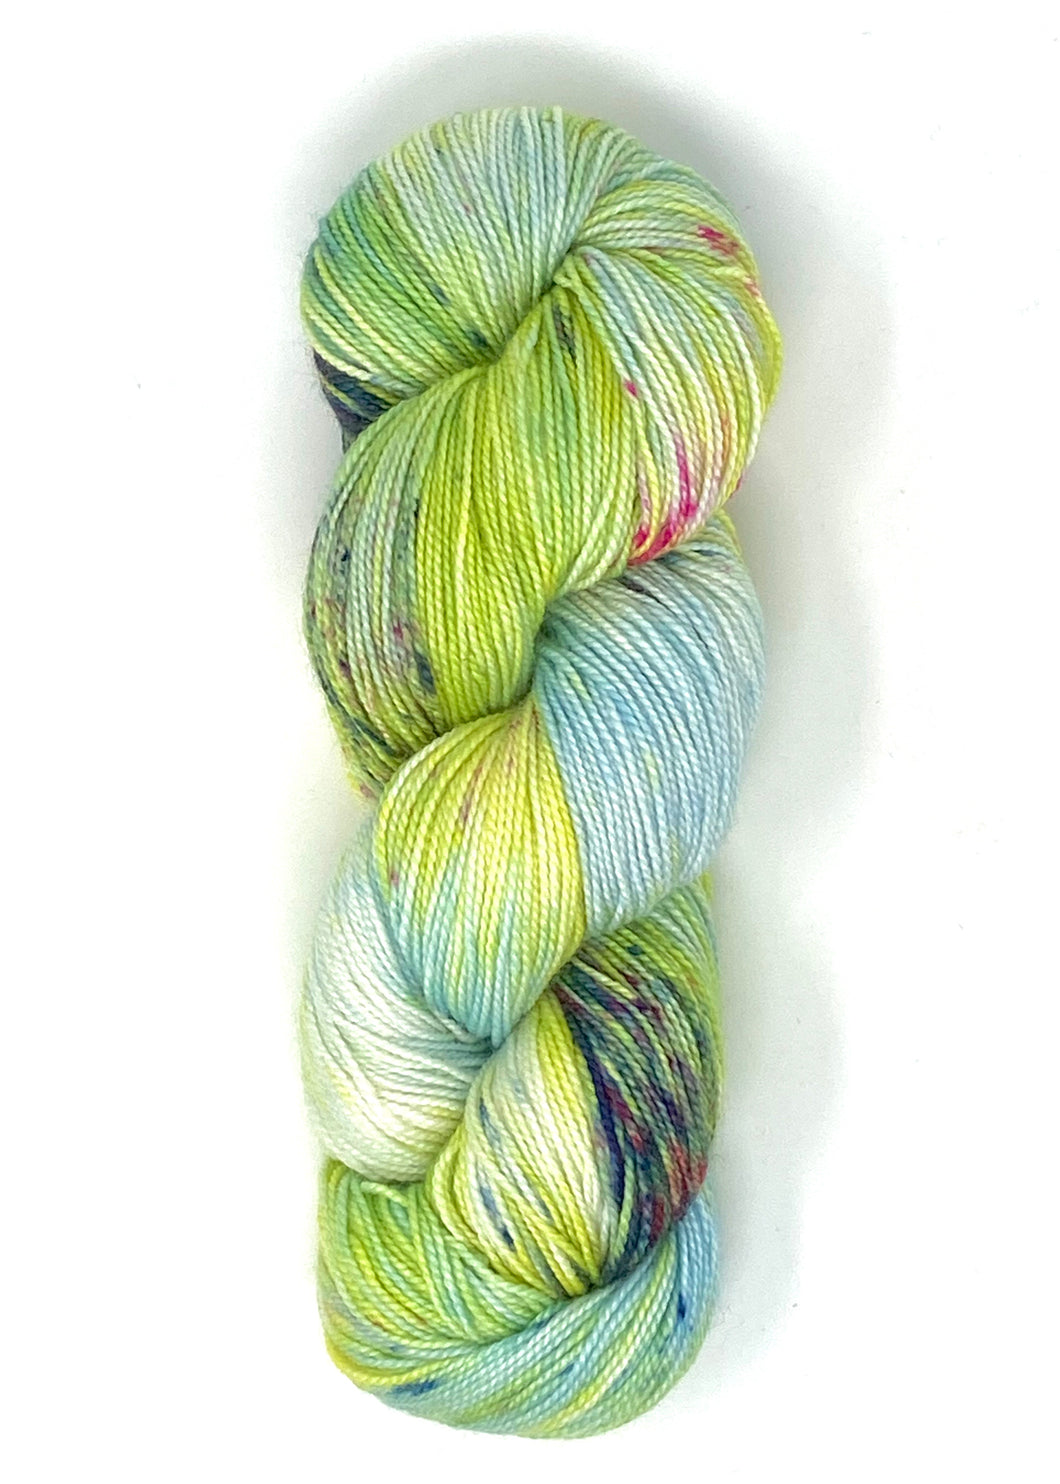 Dragon Tail - Baah Yarn La Jolla